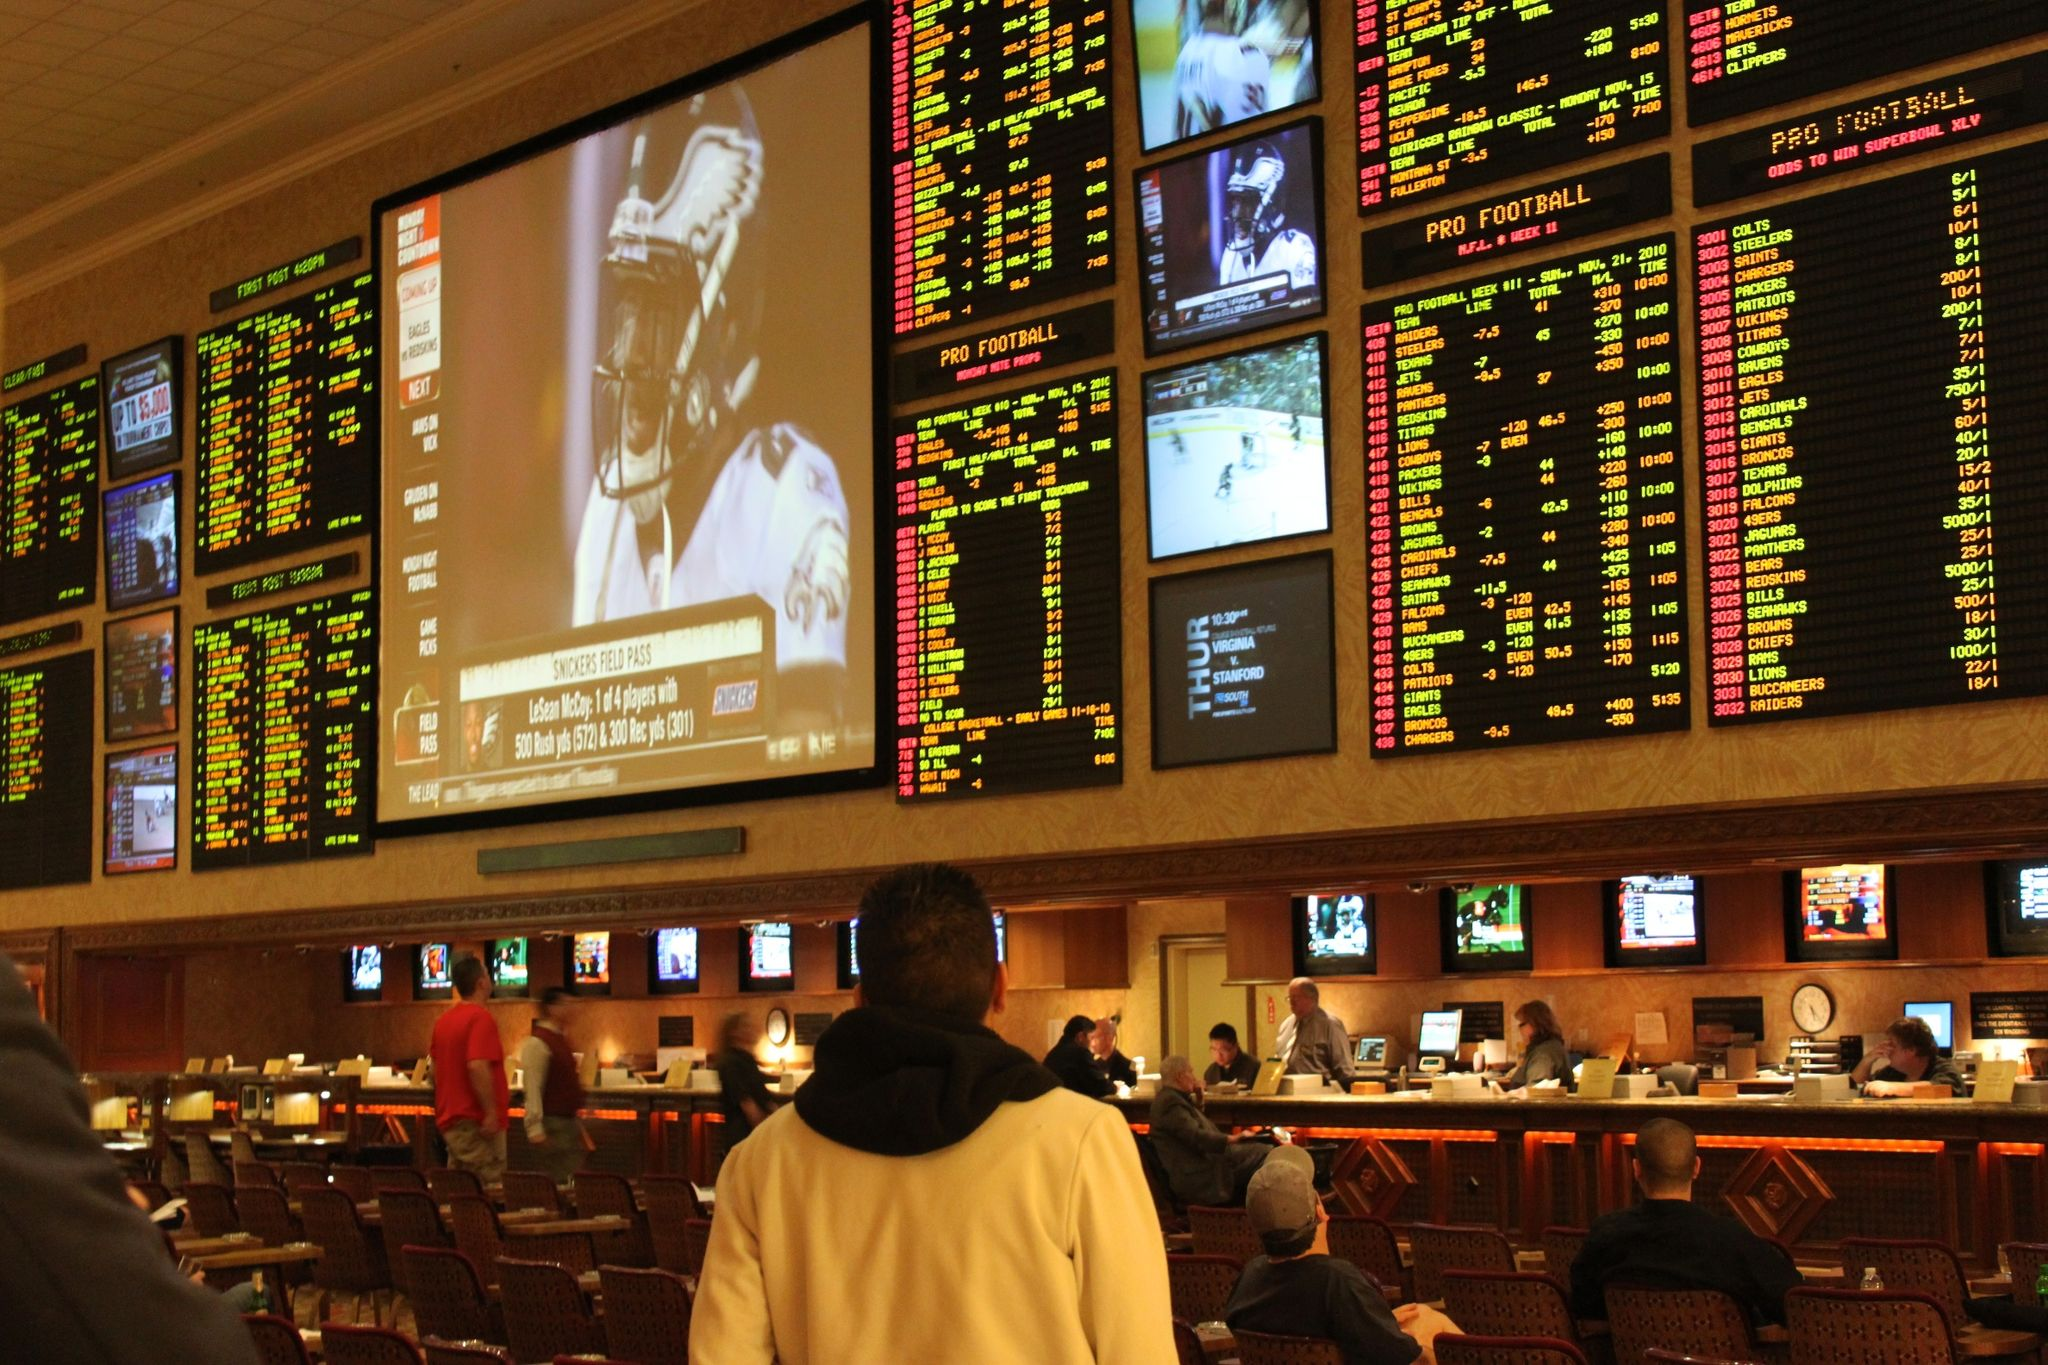 Supreme Court prompts state to reconsider sports gambling